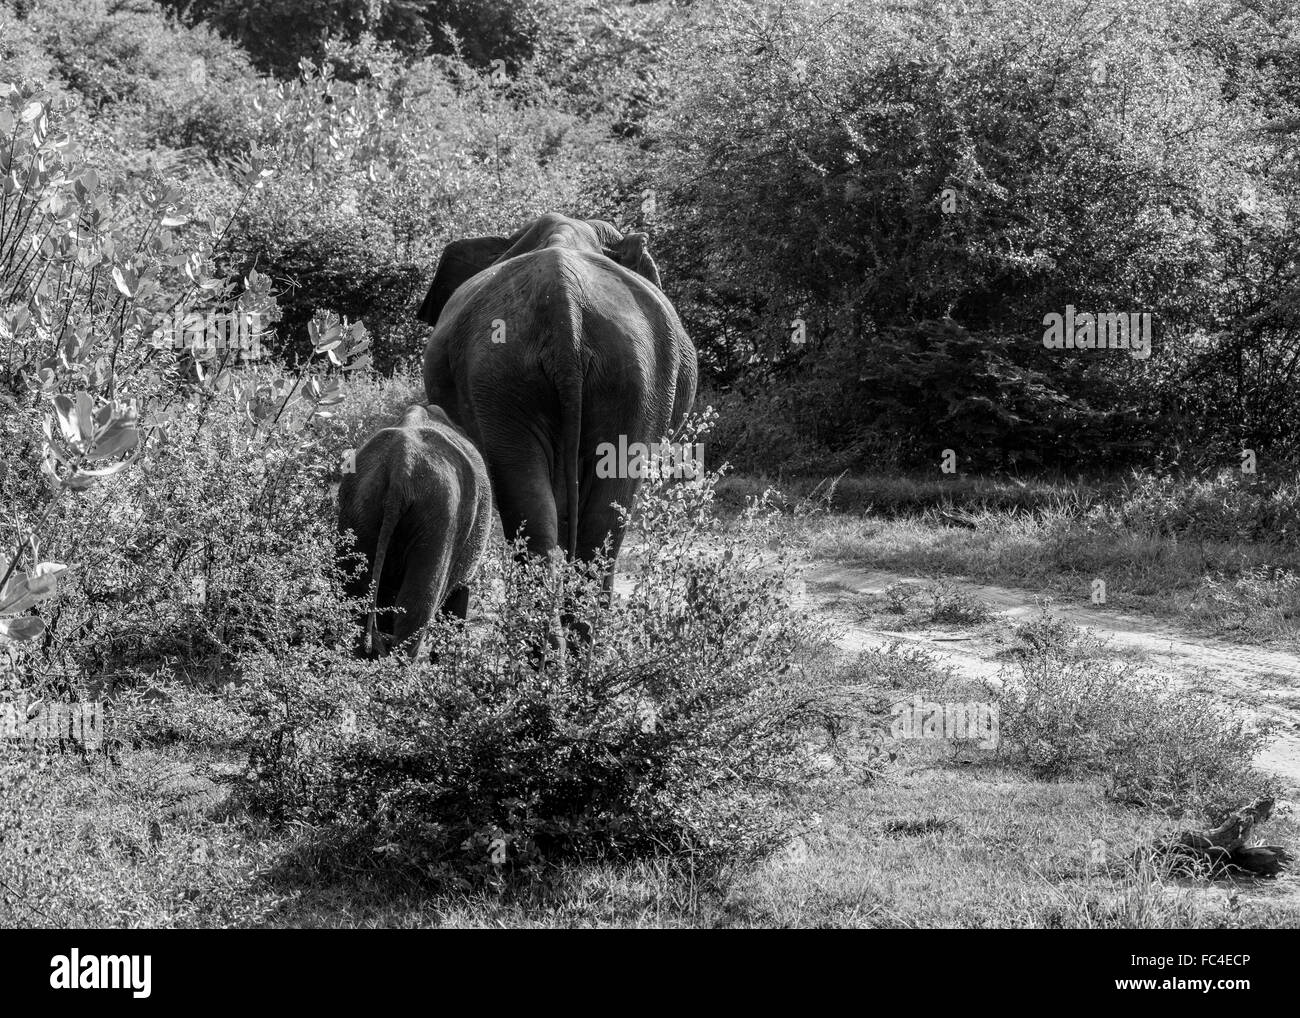 Wild Asian elephant walks through the shrub with its young baby in Udawalawe, Sri Lanka - Stock Image